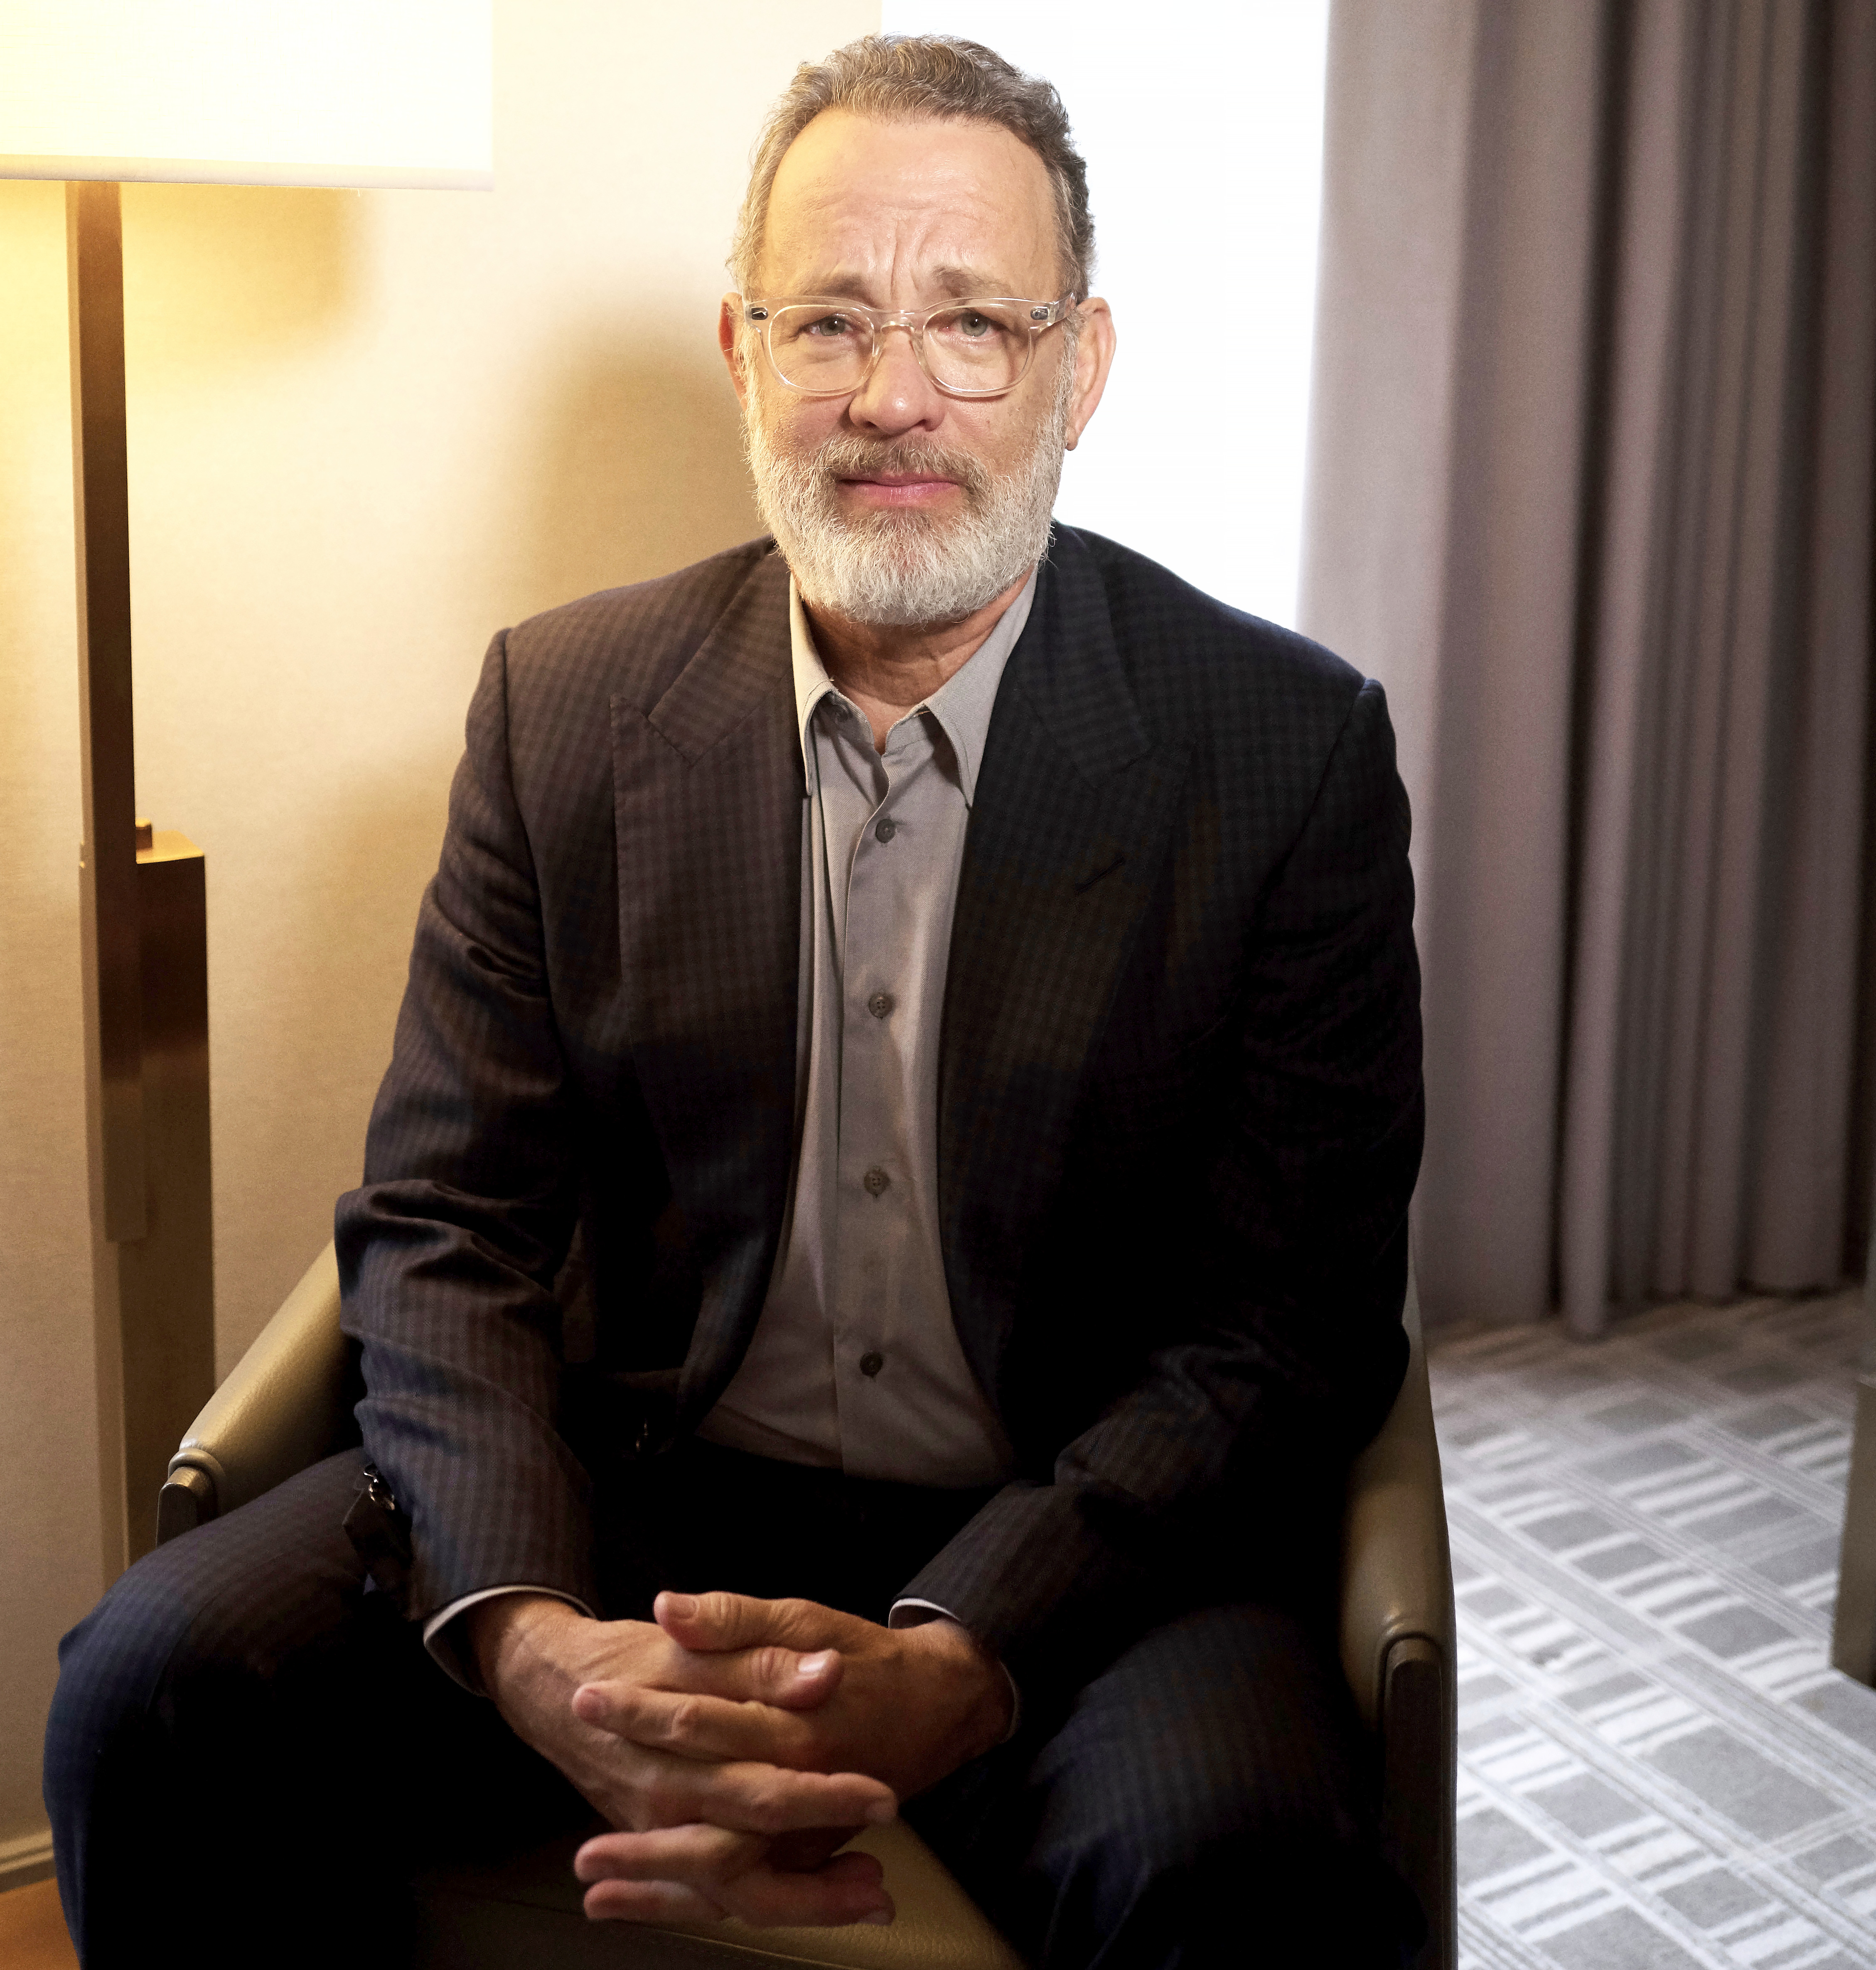 Tom Hanks Is Not Great But Still OK Amid Coronavirus Battle